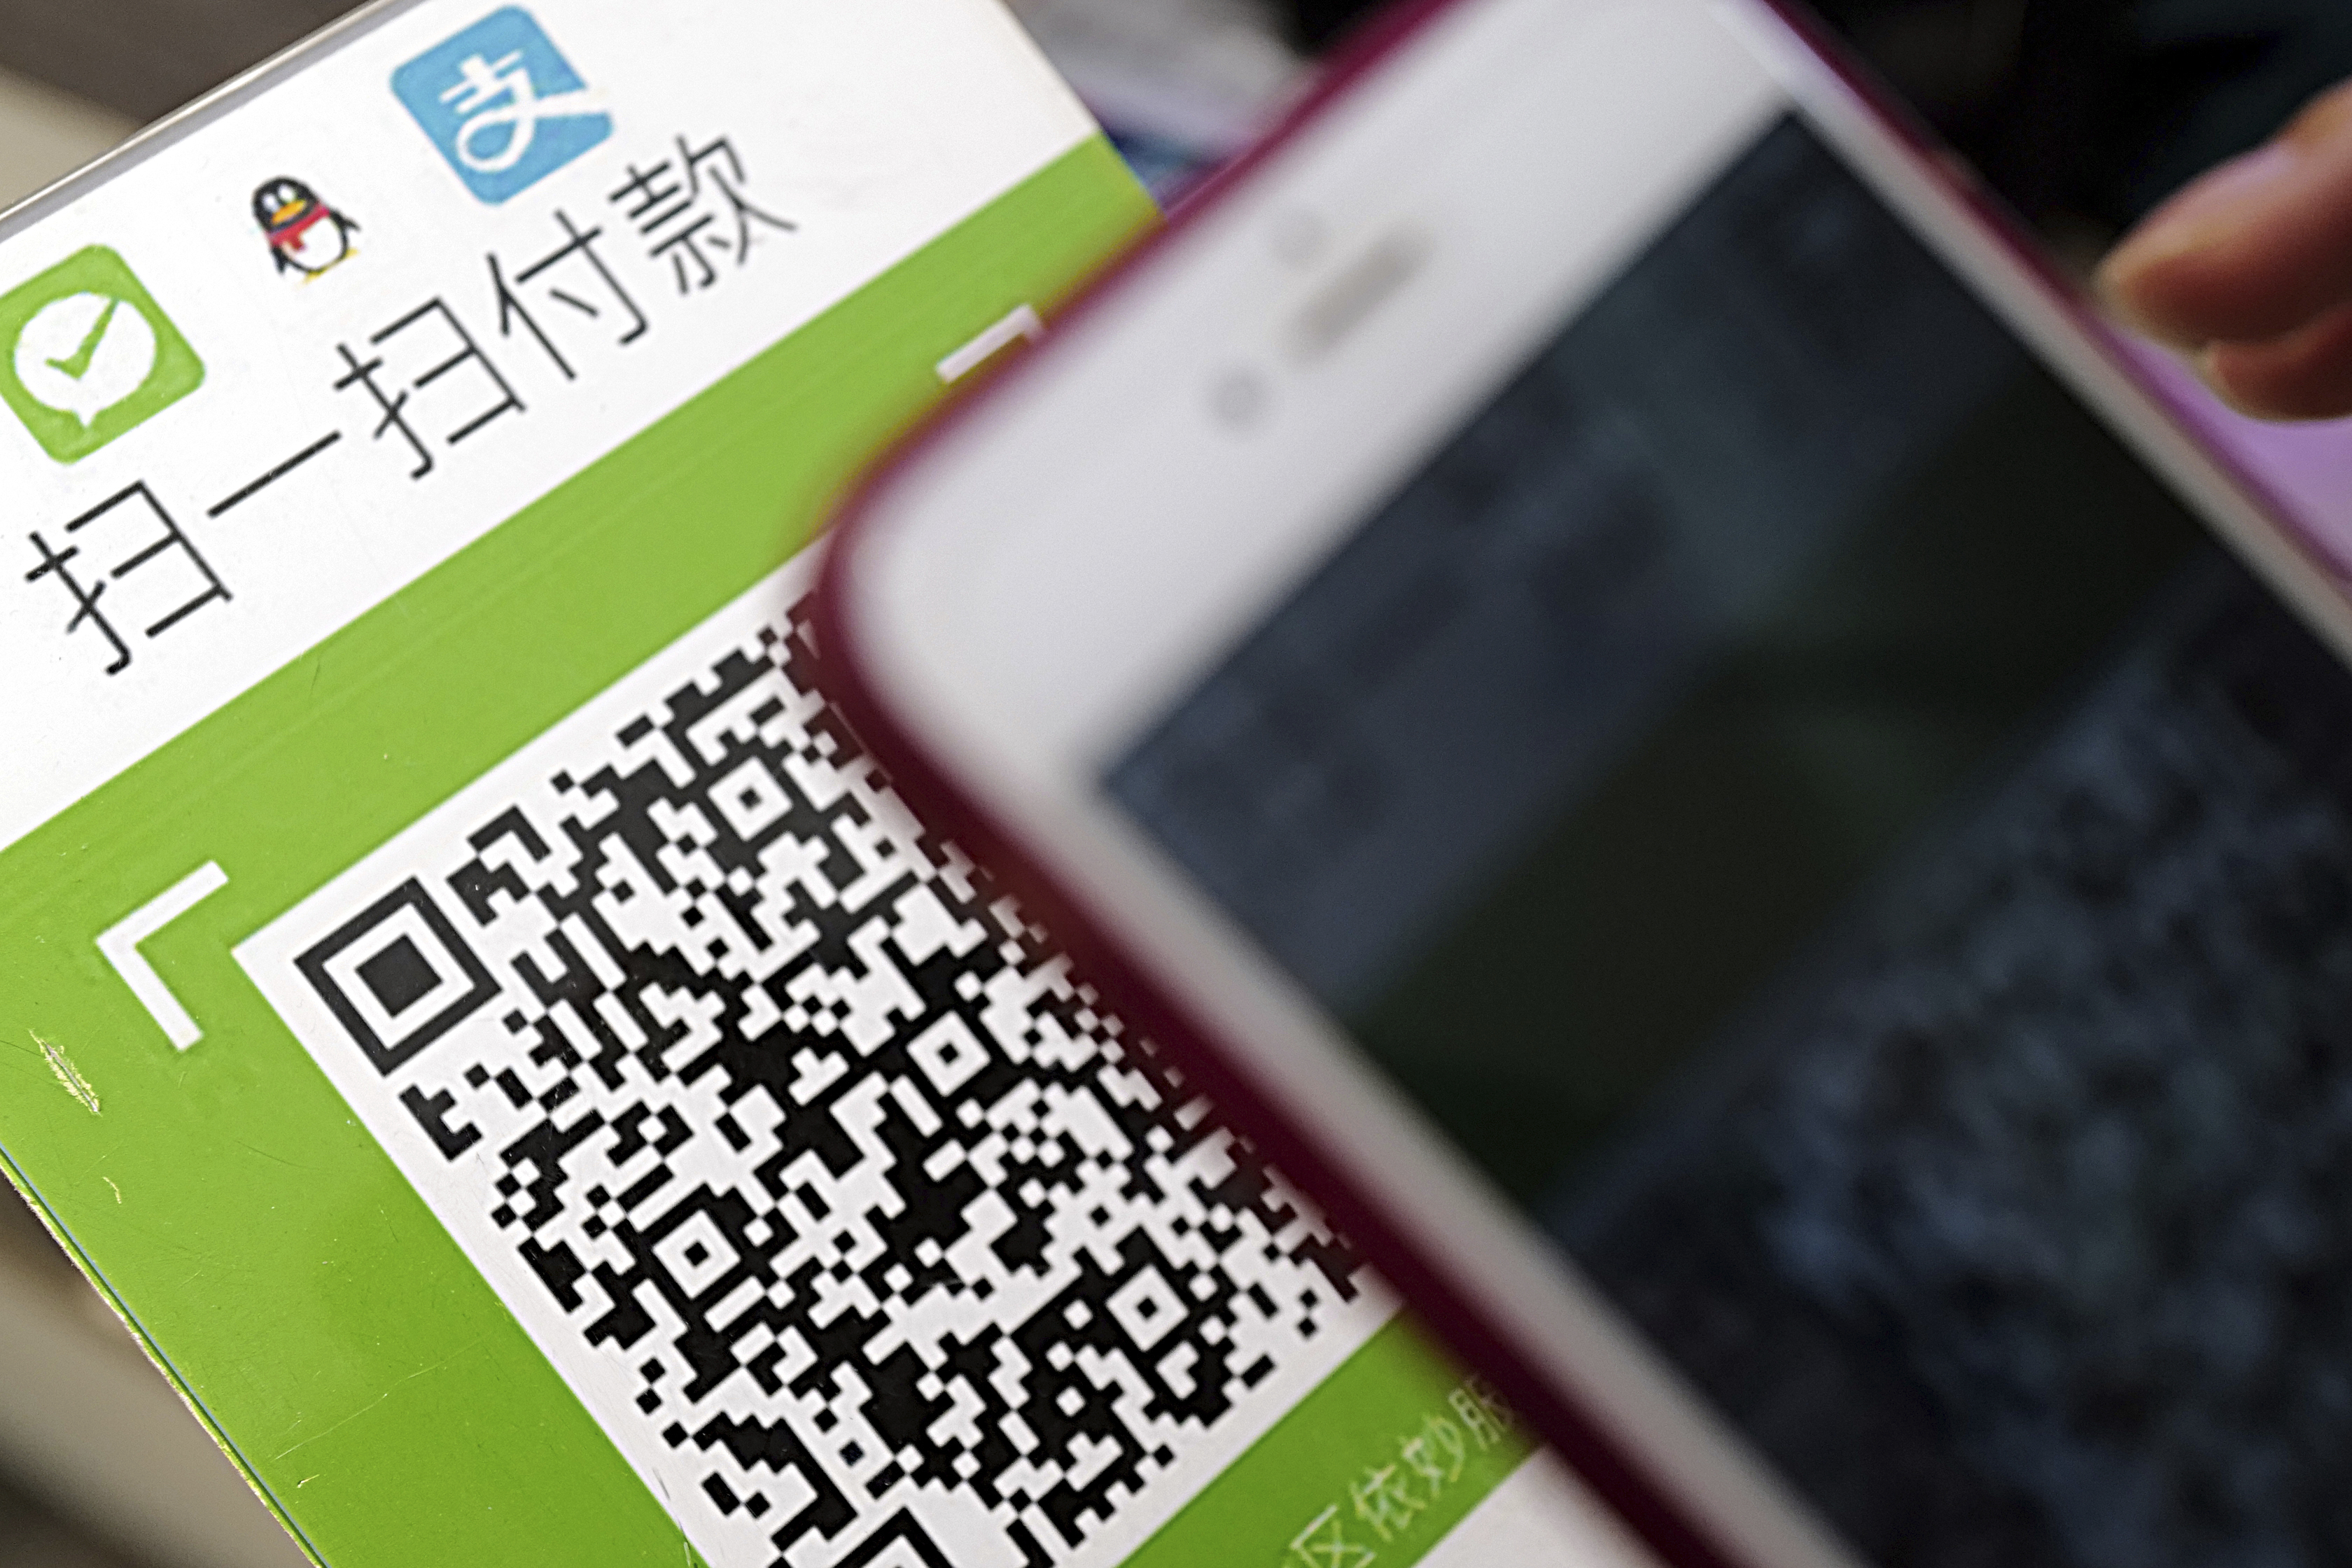 A Chinese mobile phone user scans a QR code via mobile payment service WeChat Pay of Tencent to pay his purchase.